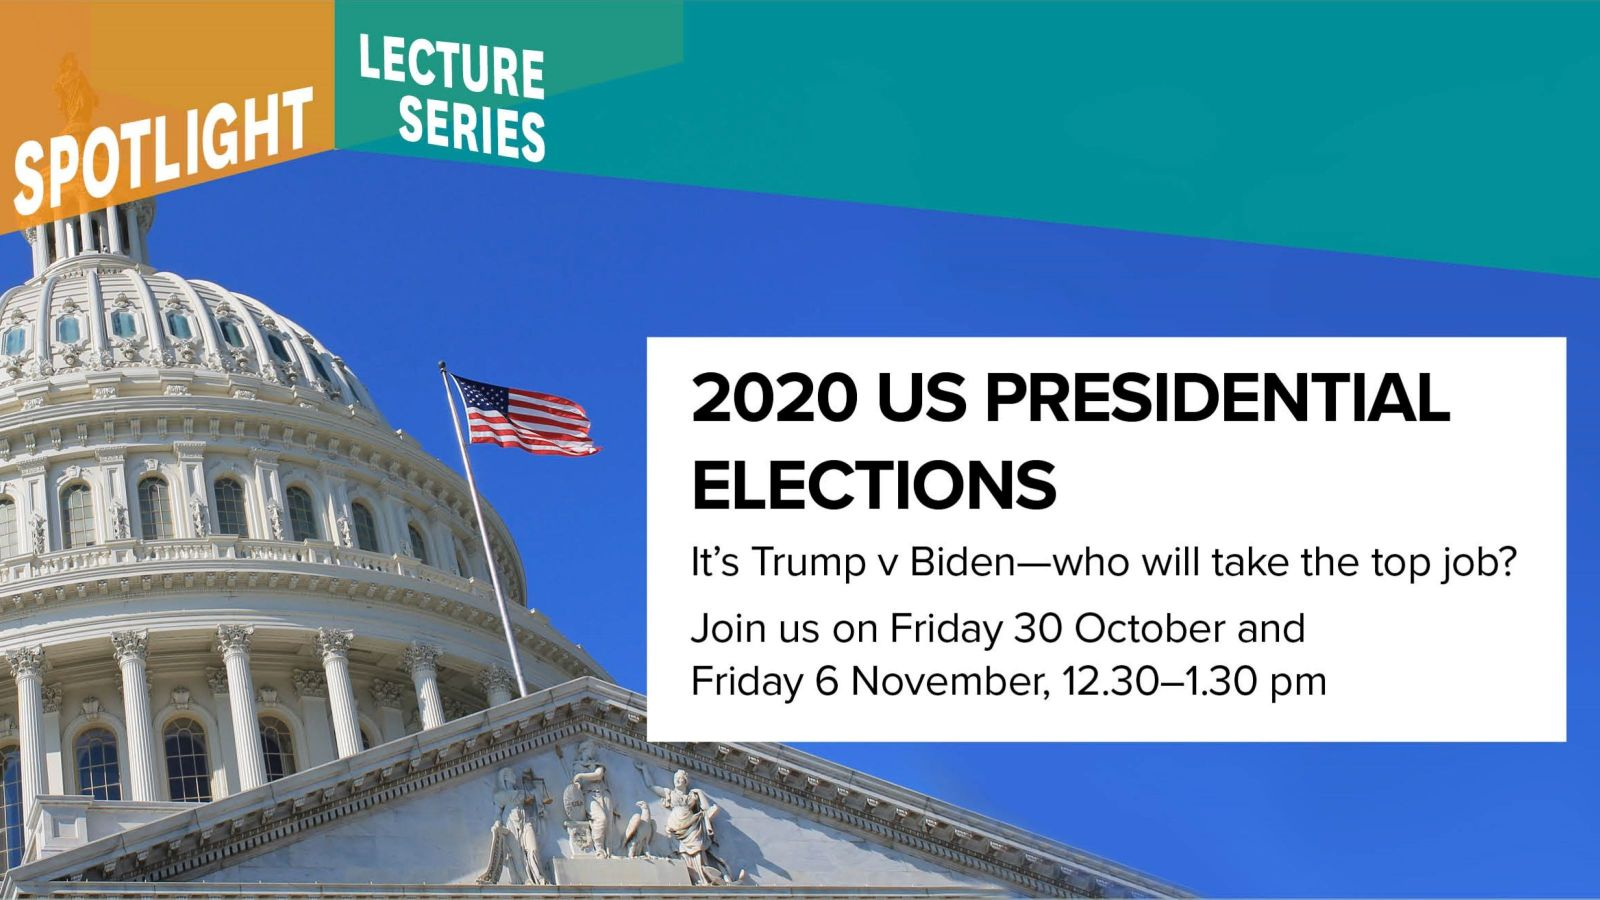 Banner image with United States Congress building, and text that reads 'Spotlight Lecture Series, 2020 US Presidential Elections, It's Trump v Biden – who will take the top job? Join us on Friday 30 October and Friday 6 November, 12.30–1.30 pm'